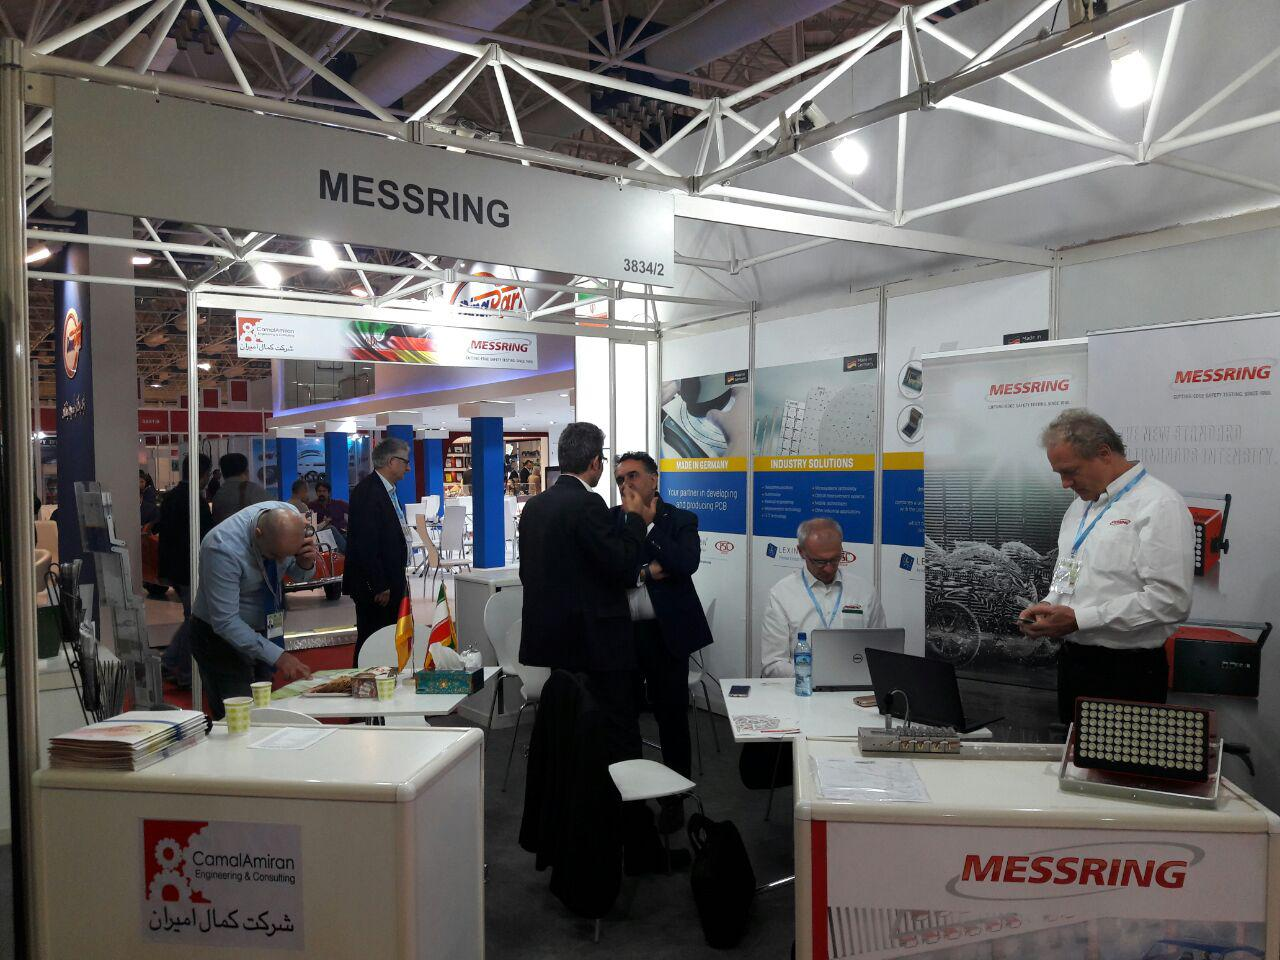 The presence of CamalAmiran and Messring and Lexington in 11th Iran International Auto Part Exhibition